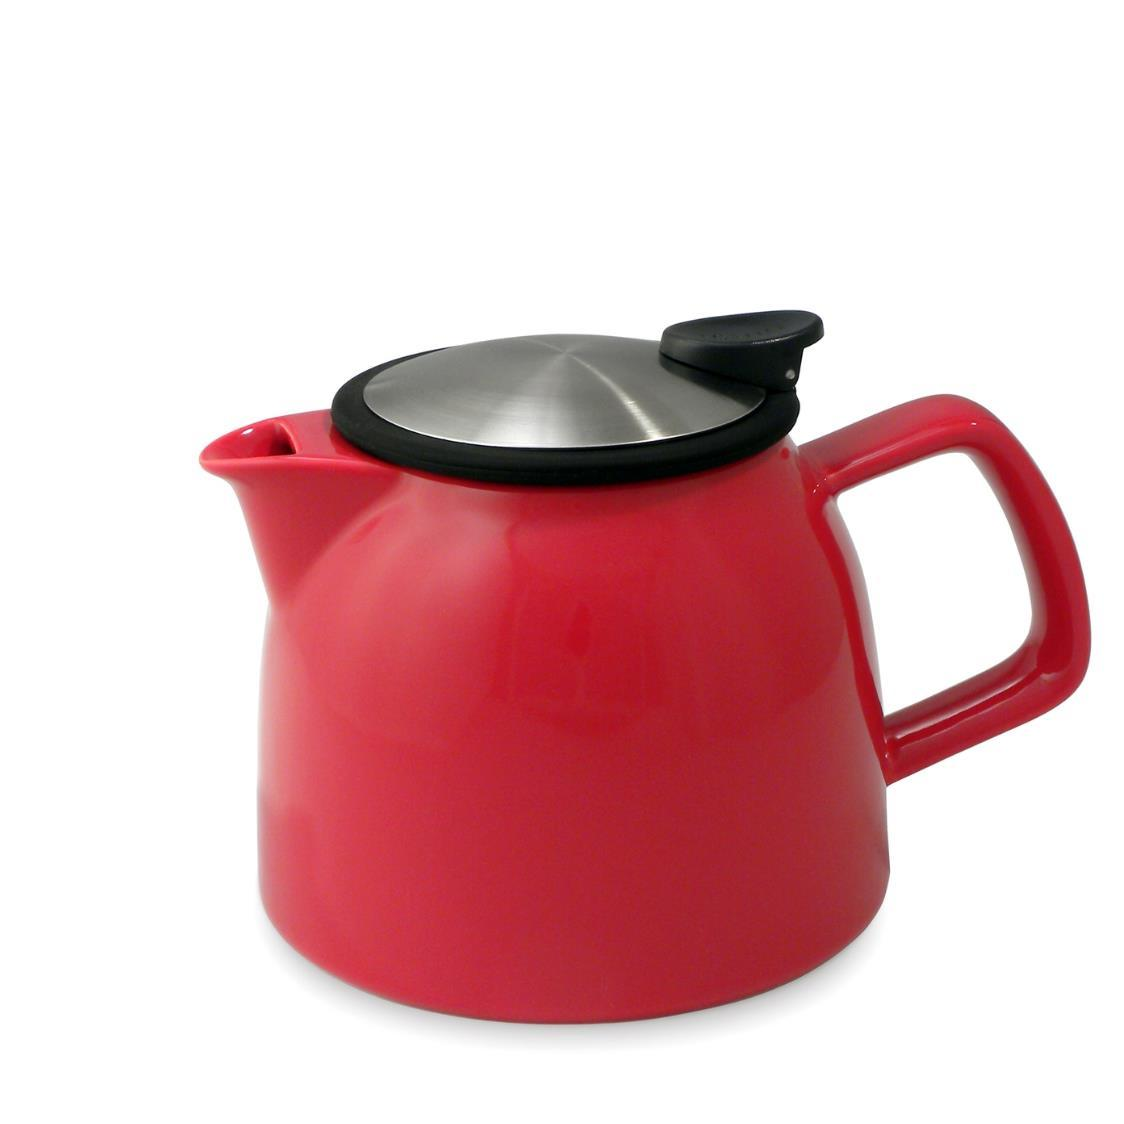 Bell Teapot with Basket Infuser 770ml FL544-RED